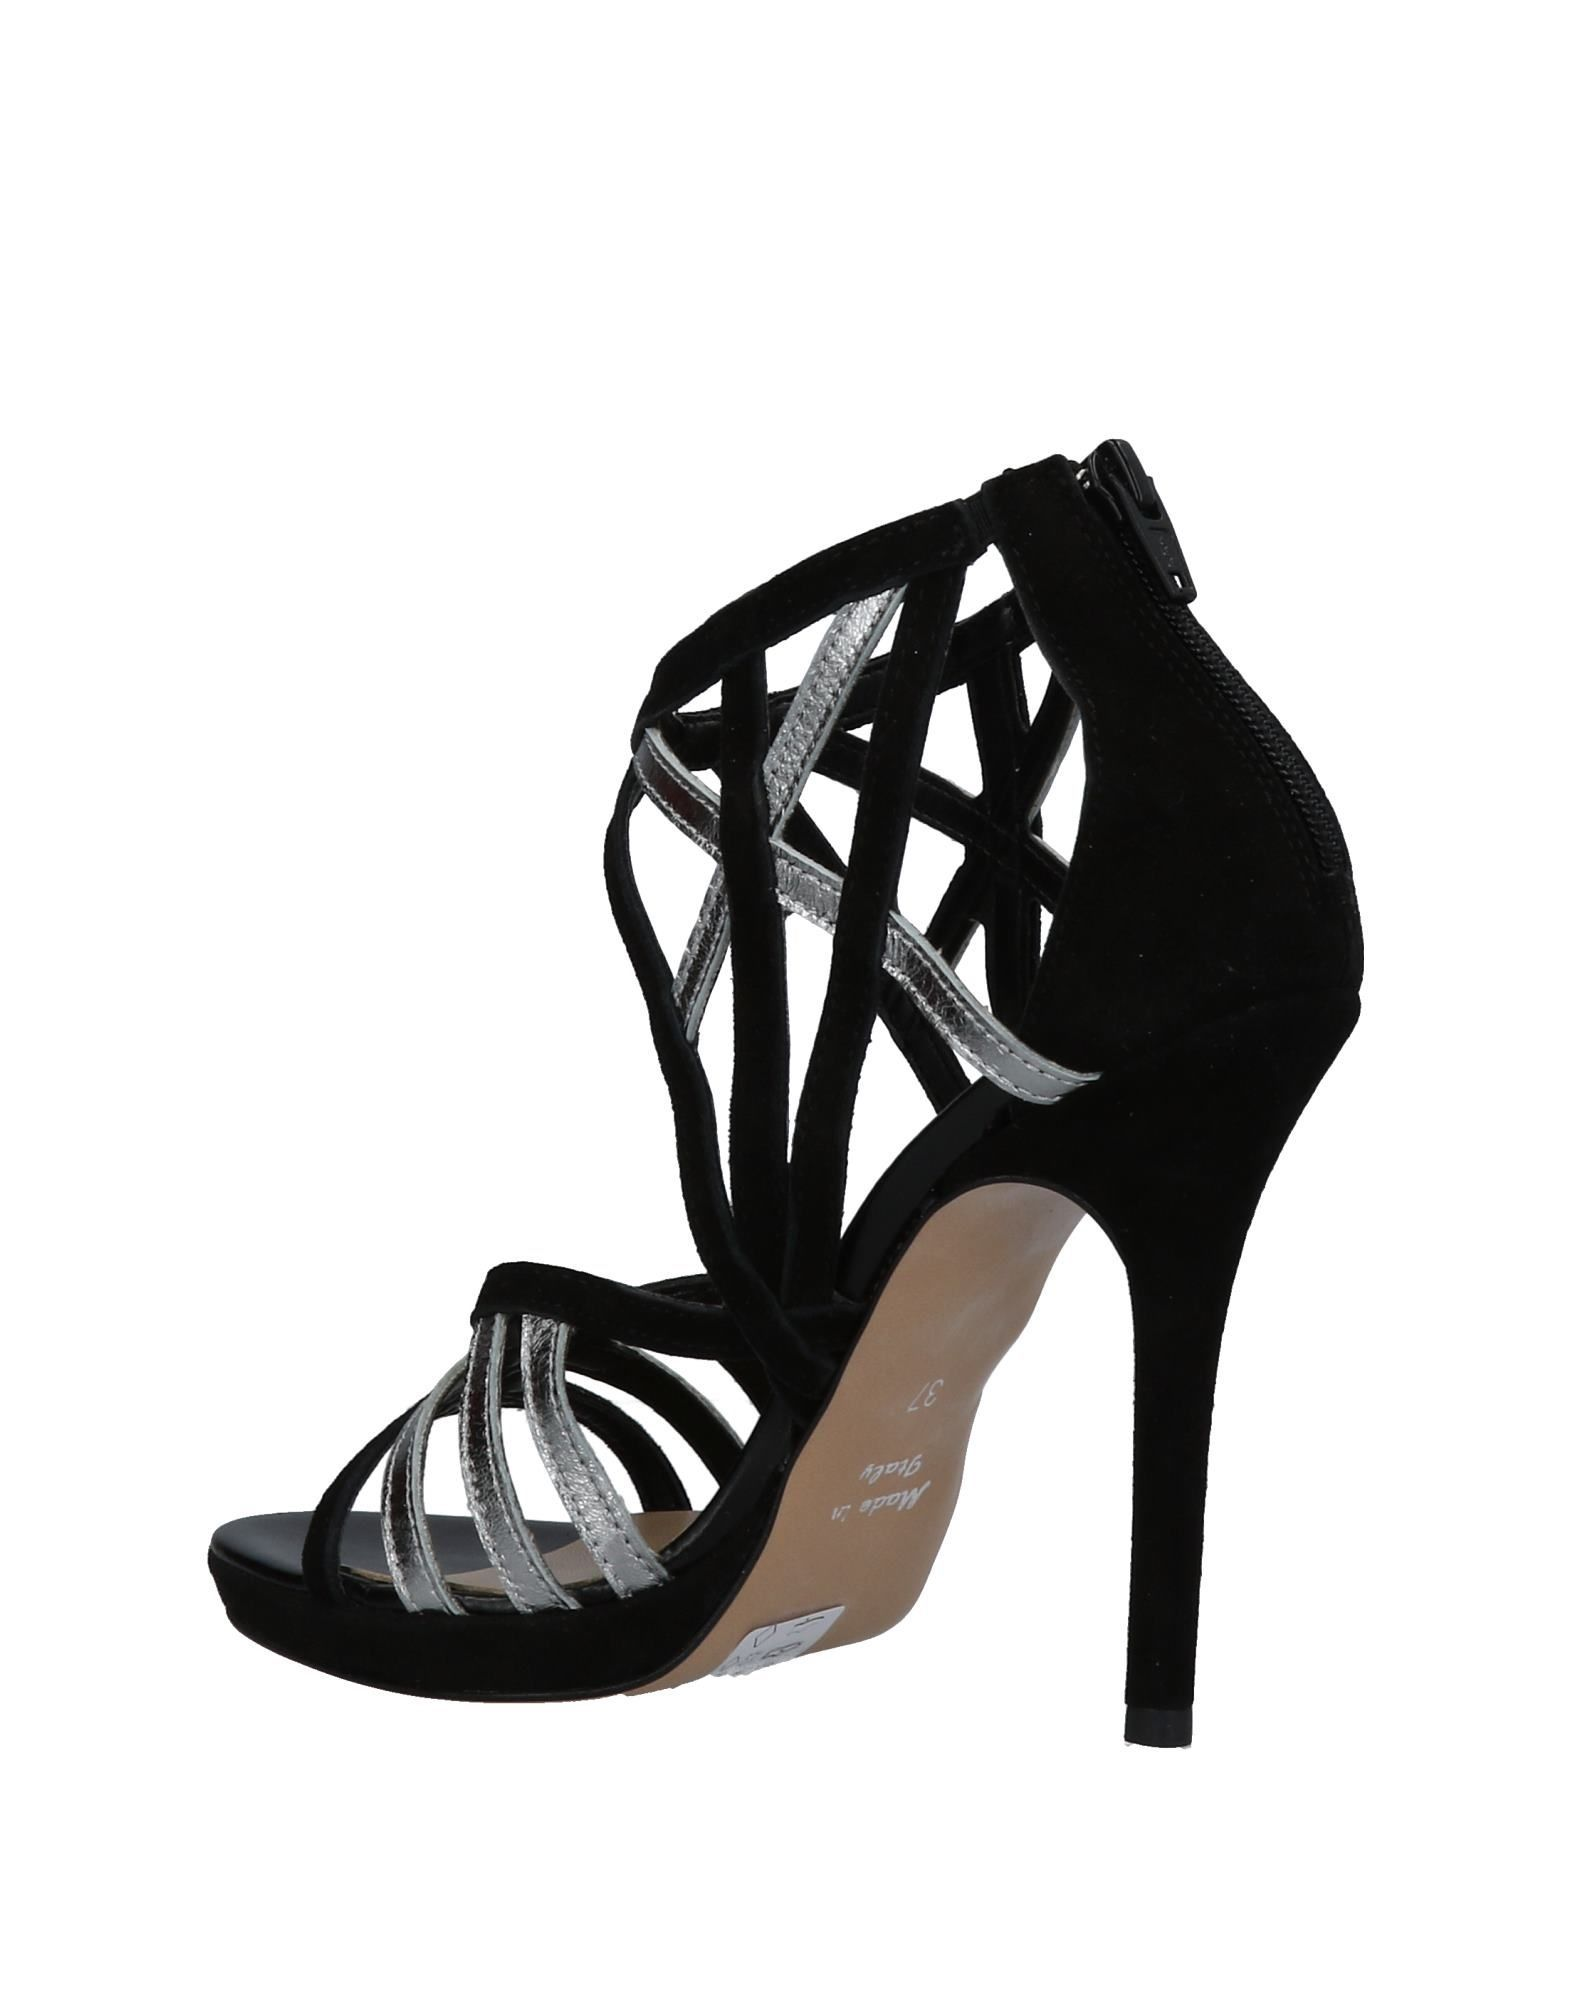 Eliana Bucci Black Leather Heeled Sandals